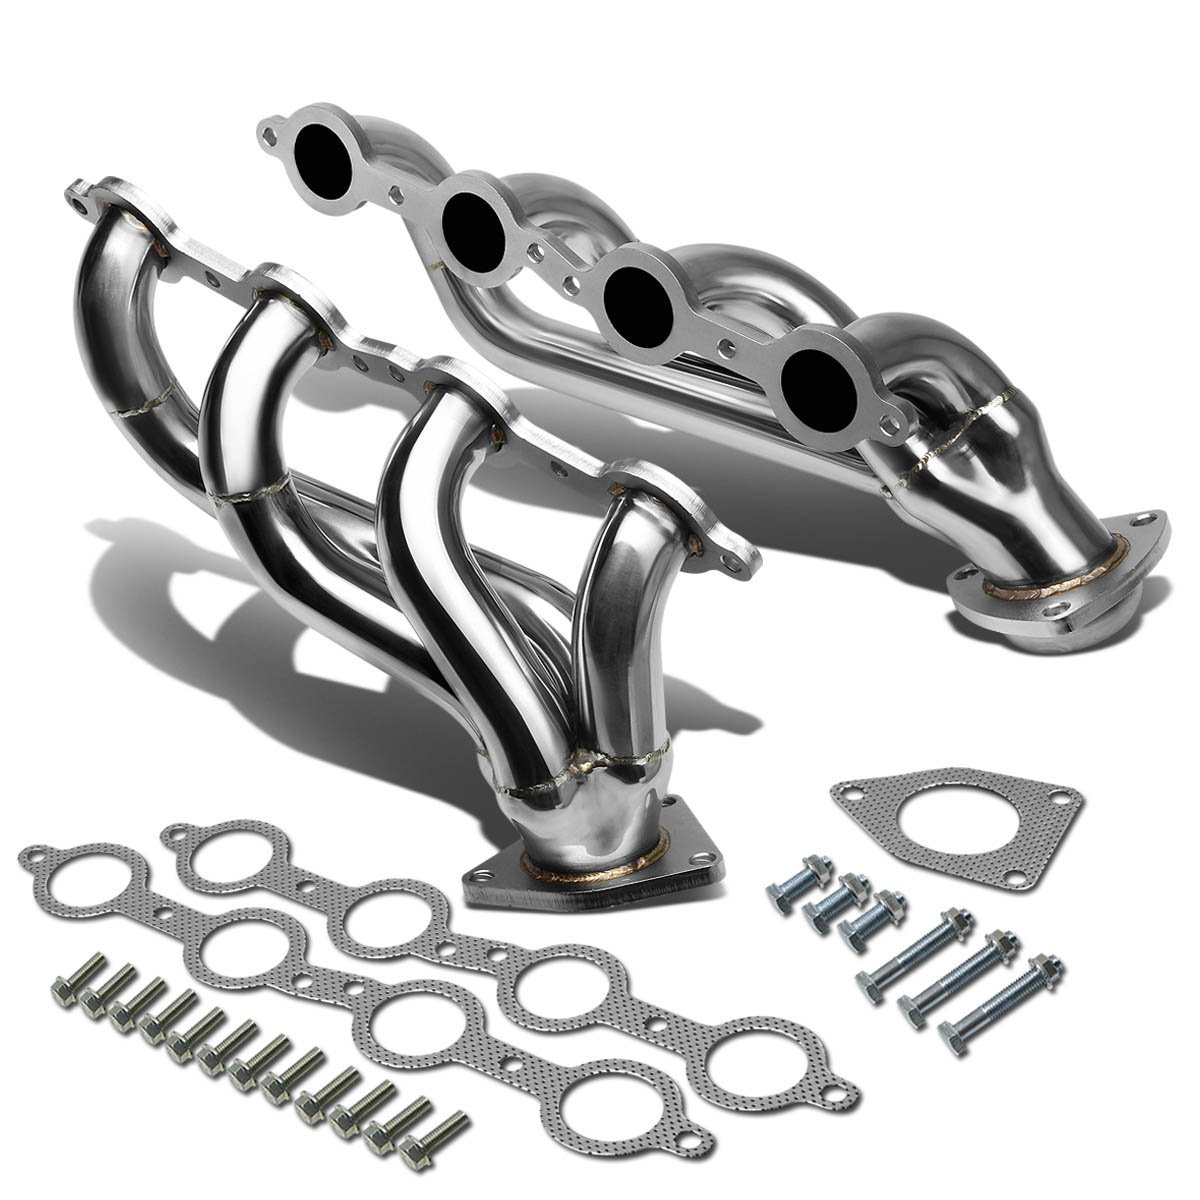 02 11 cadillac escalade 07 08 hummer h2 stainless racing manifold 02 11 cadillac escalade 07 08 hummer h2 stainless racing manifold header exhaust publicscrutiny Gallery